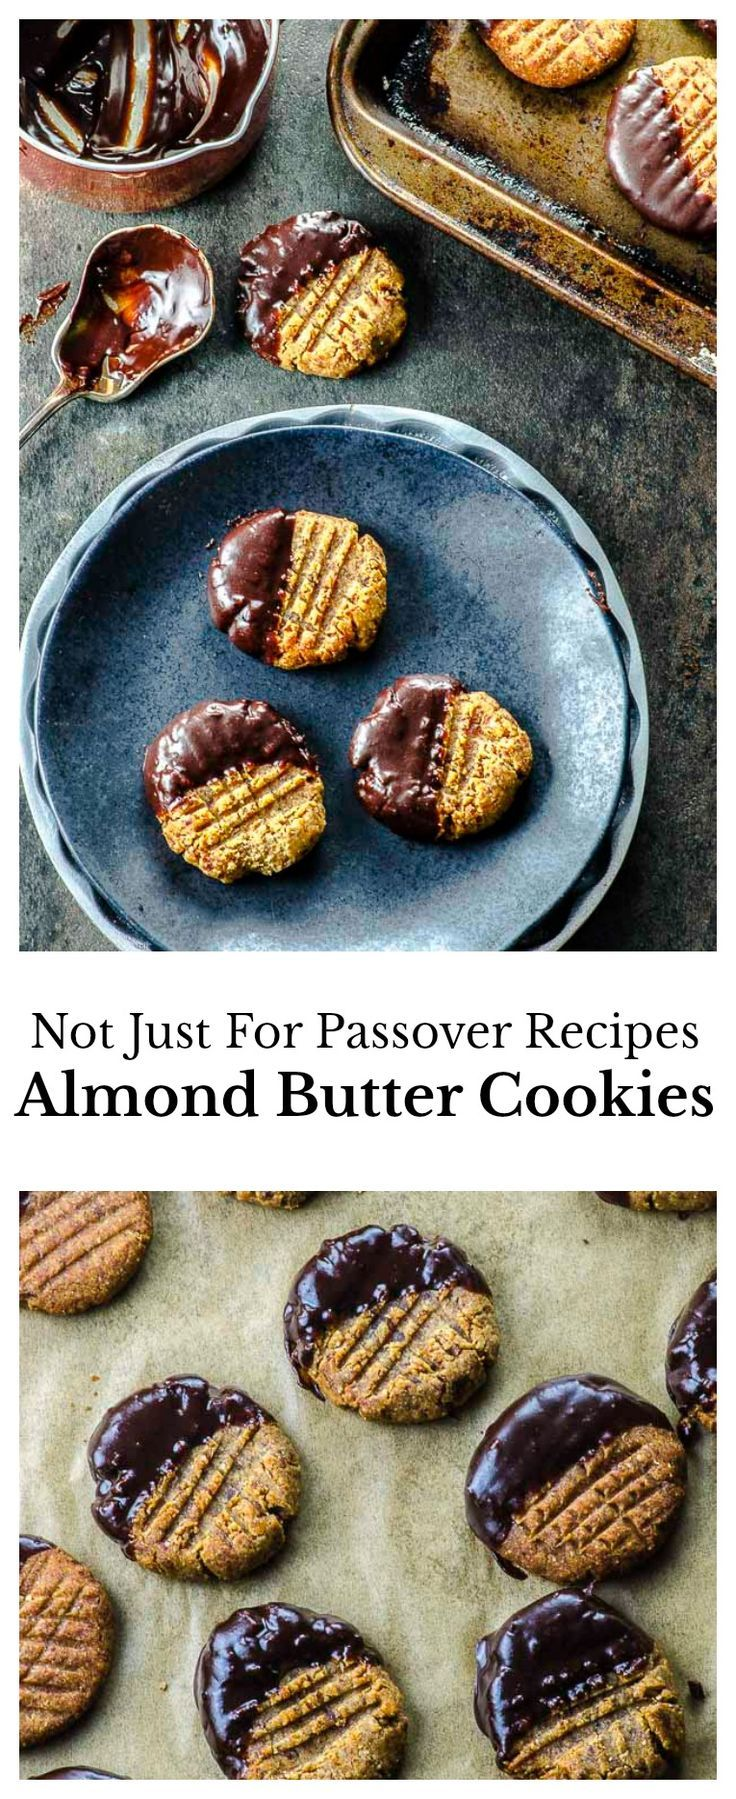 Chewy and delicious gluten-free almond butter cookies sweetened with dates and with only 5 ingredients! via @mayihavethatrecipe